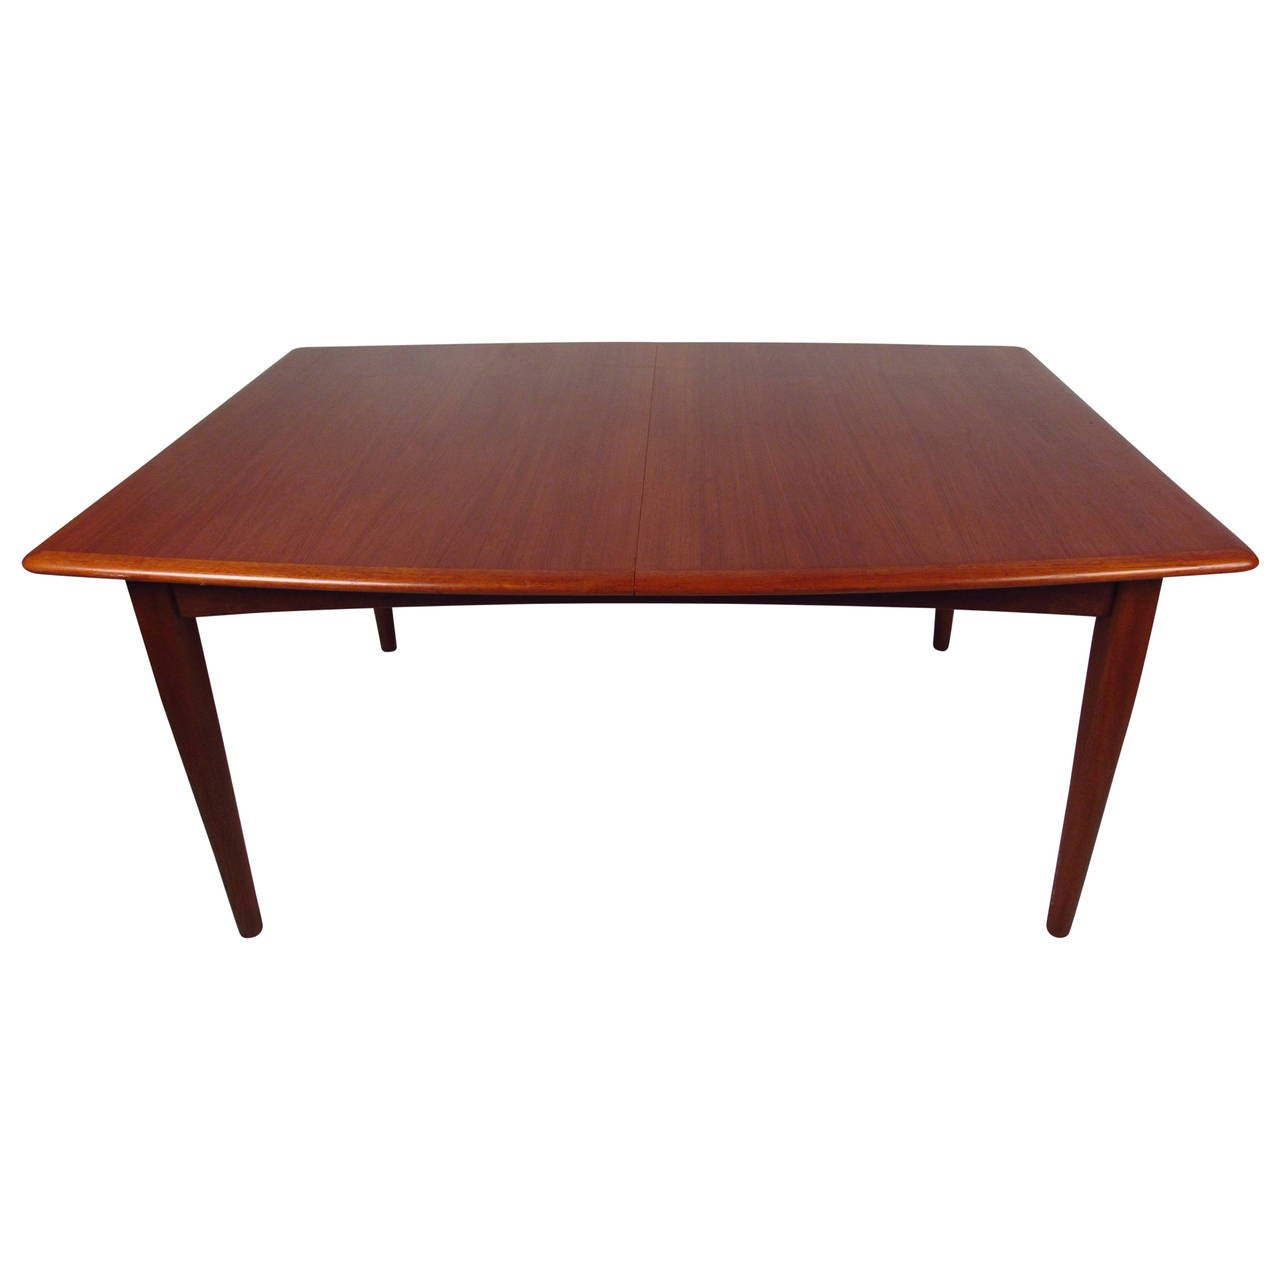 Danish modern butterfly leaf dining table at 1stdibs for Dining room table replacement leaf